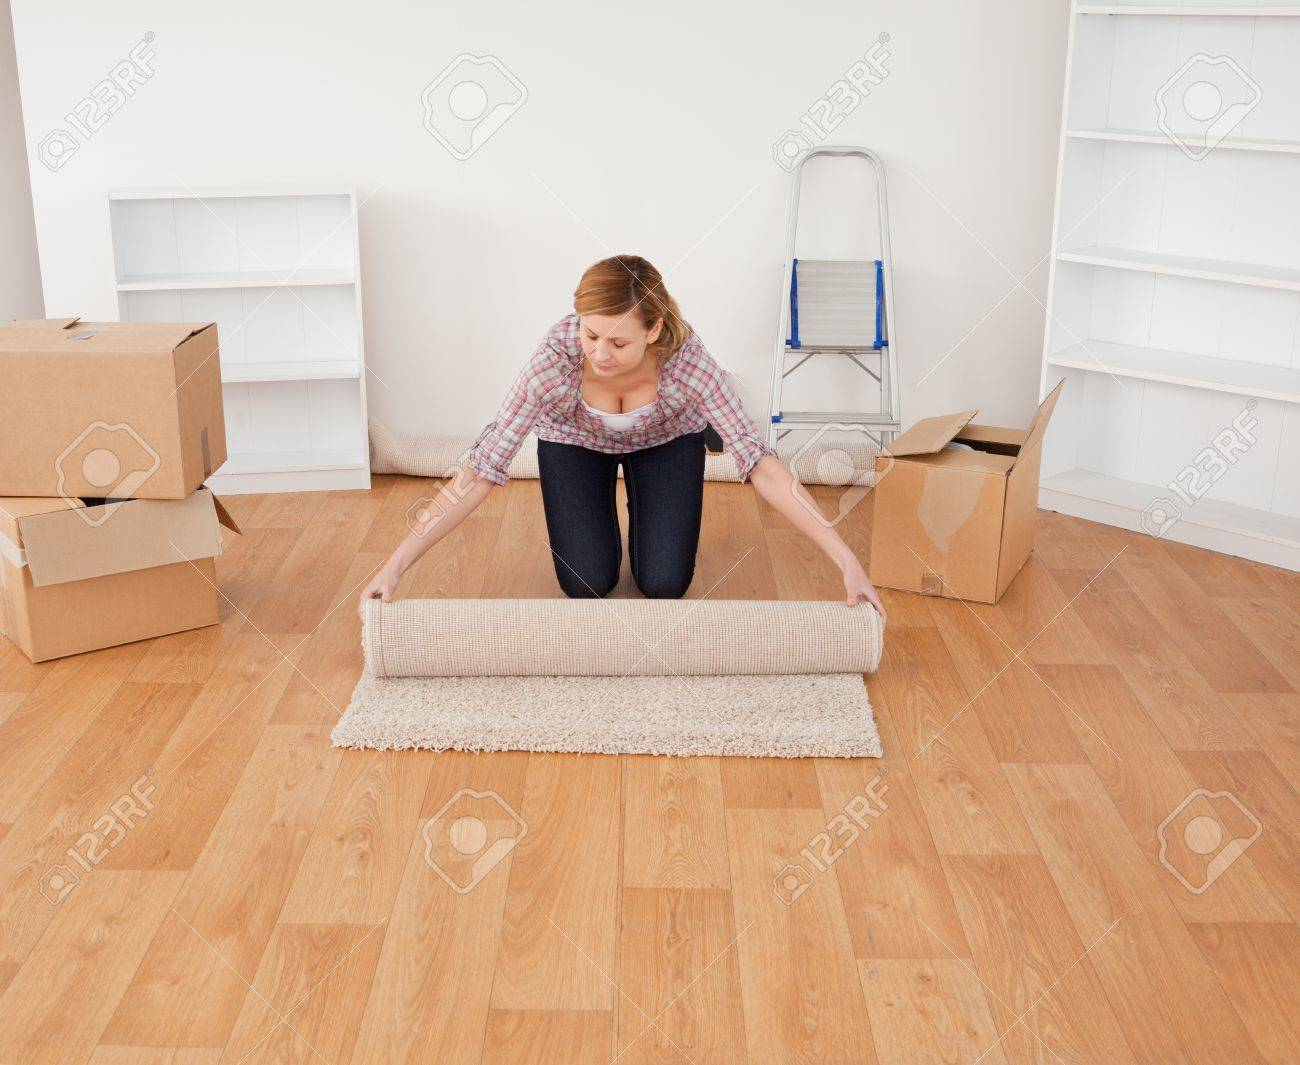 Blond-haired woman rolling up a carpet to prepare to move house Stock Photo - 10205880